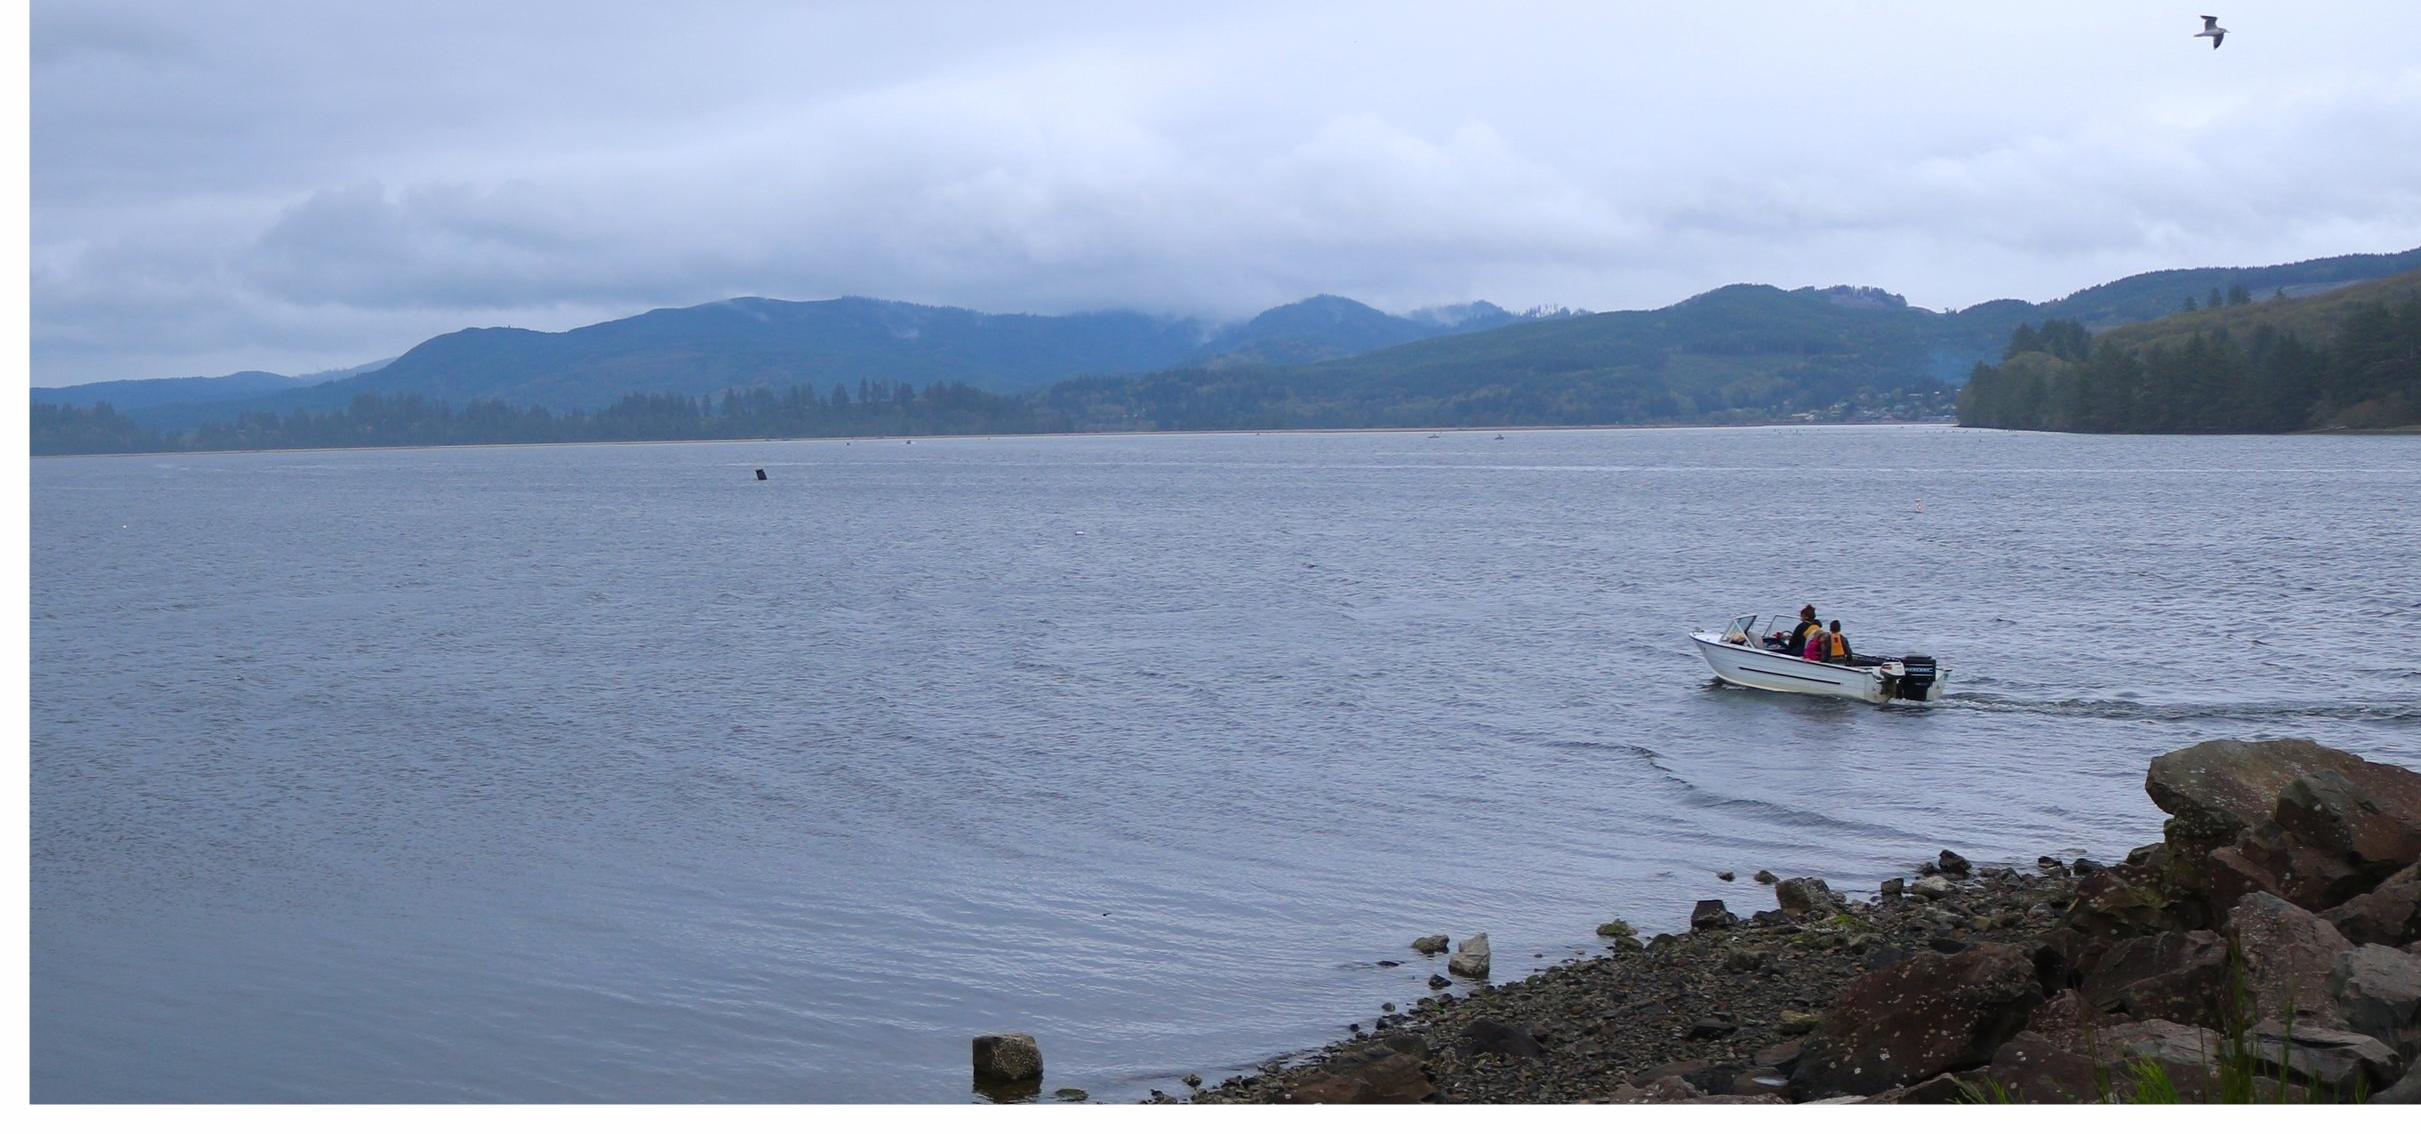 Lone crabbing boat heads out into Nehalem Bay, Oregon.